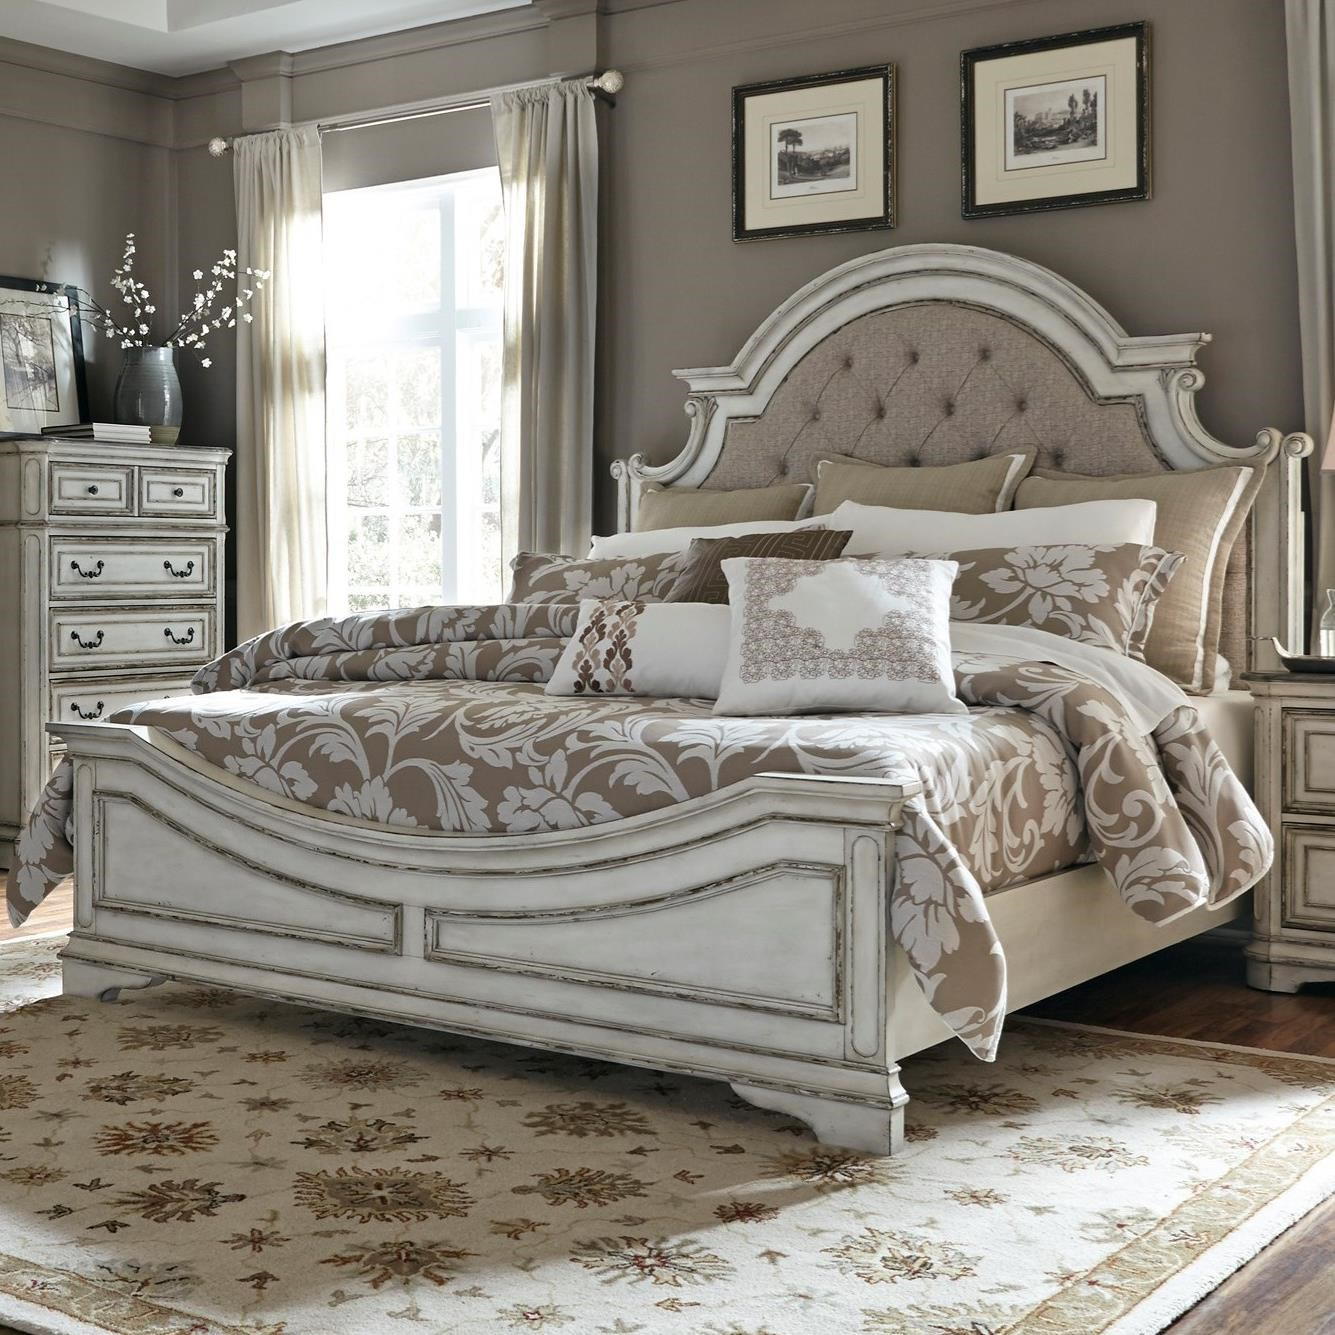 Nice Upholstered King Bedroom Set Property